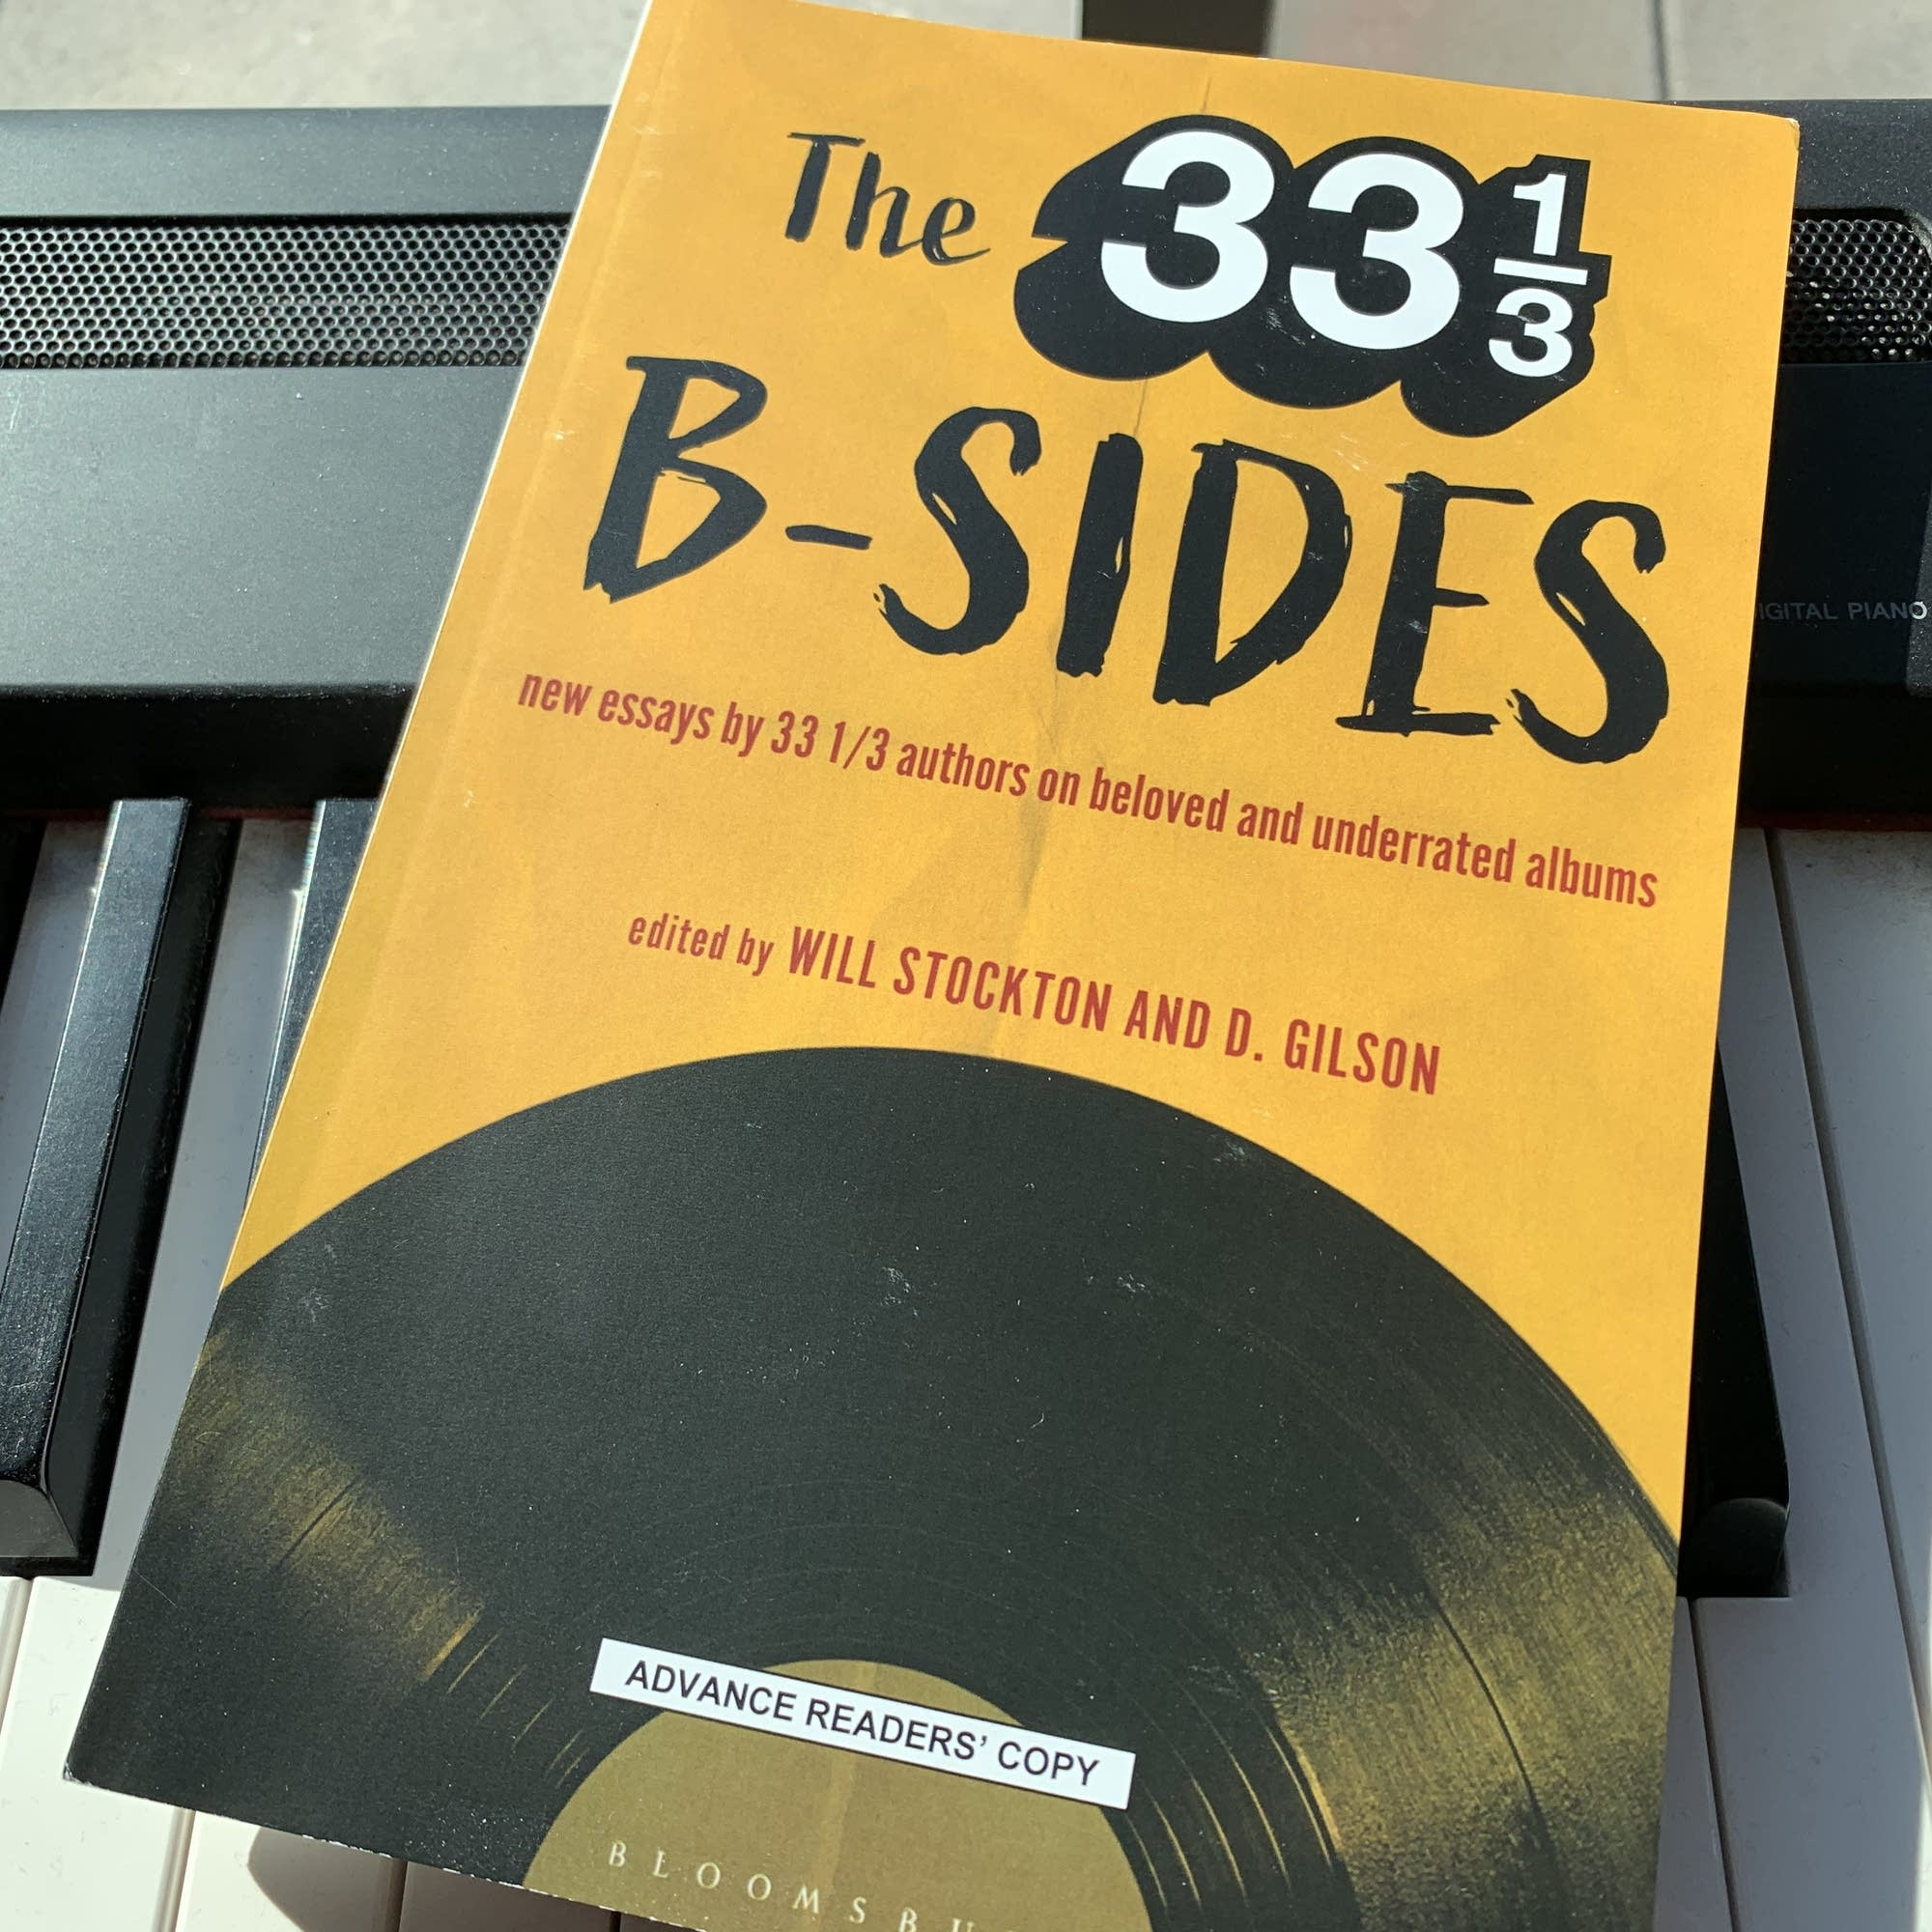 'The 33 1/3 B-Sides,' edited by Will Stockton and D. Gilson.